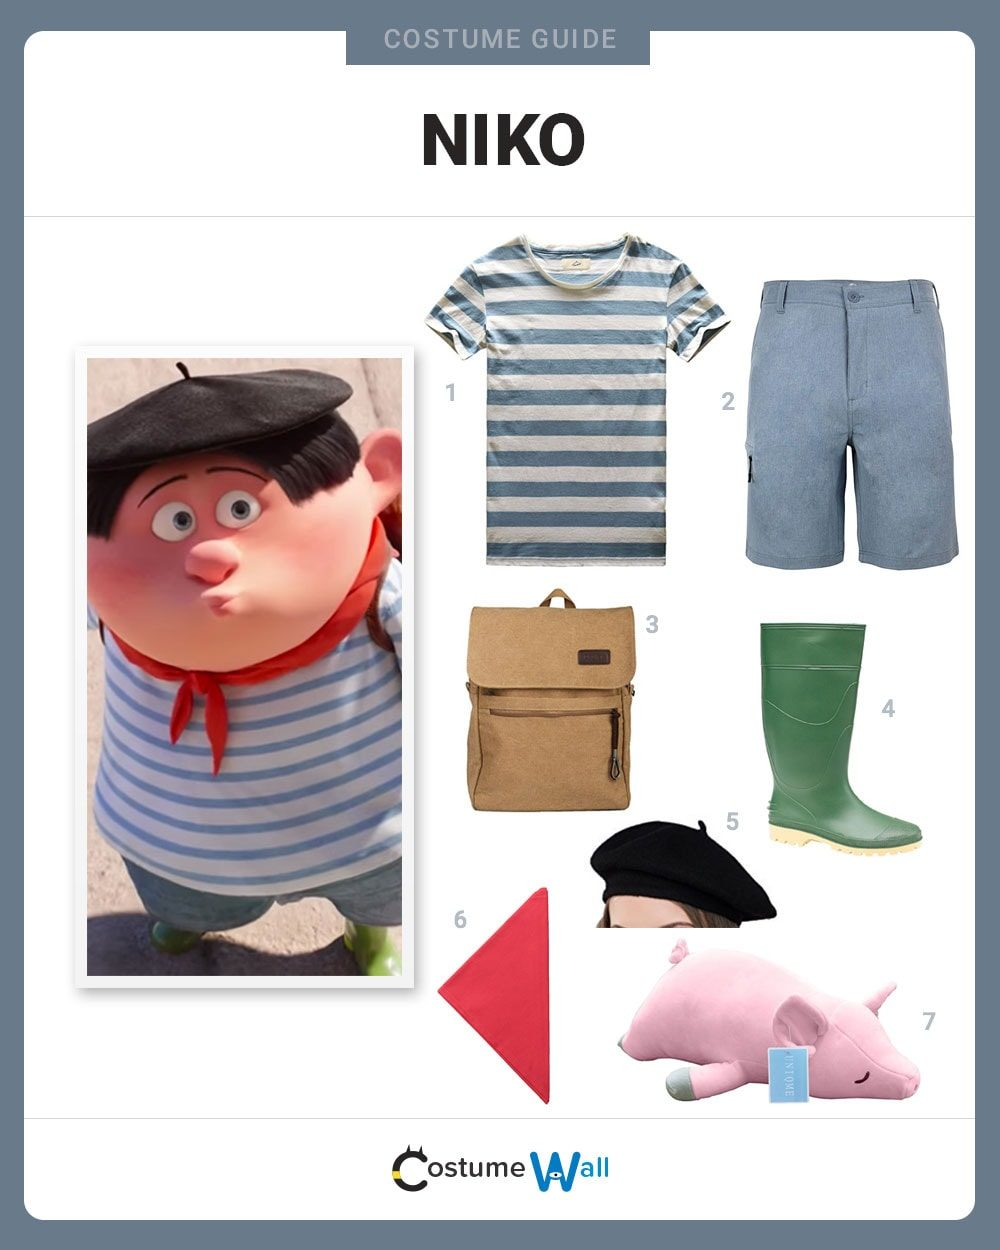 Niko Costume Guide